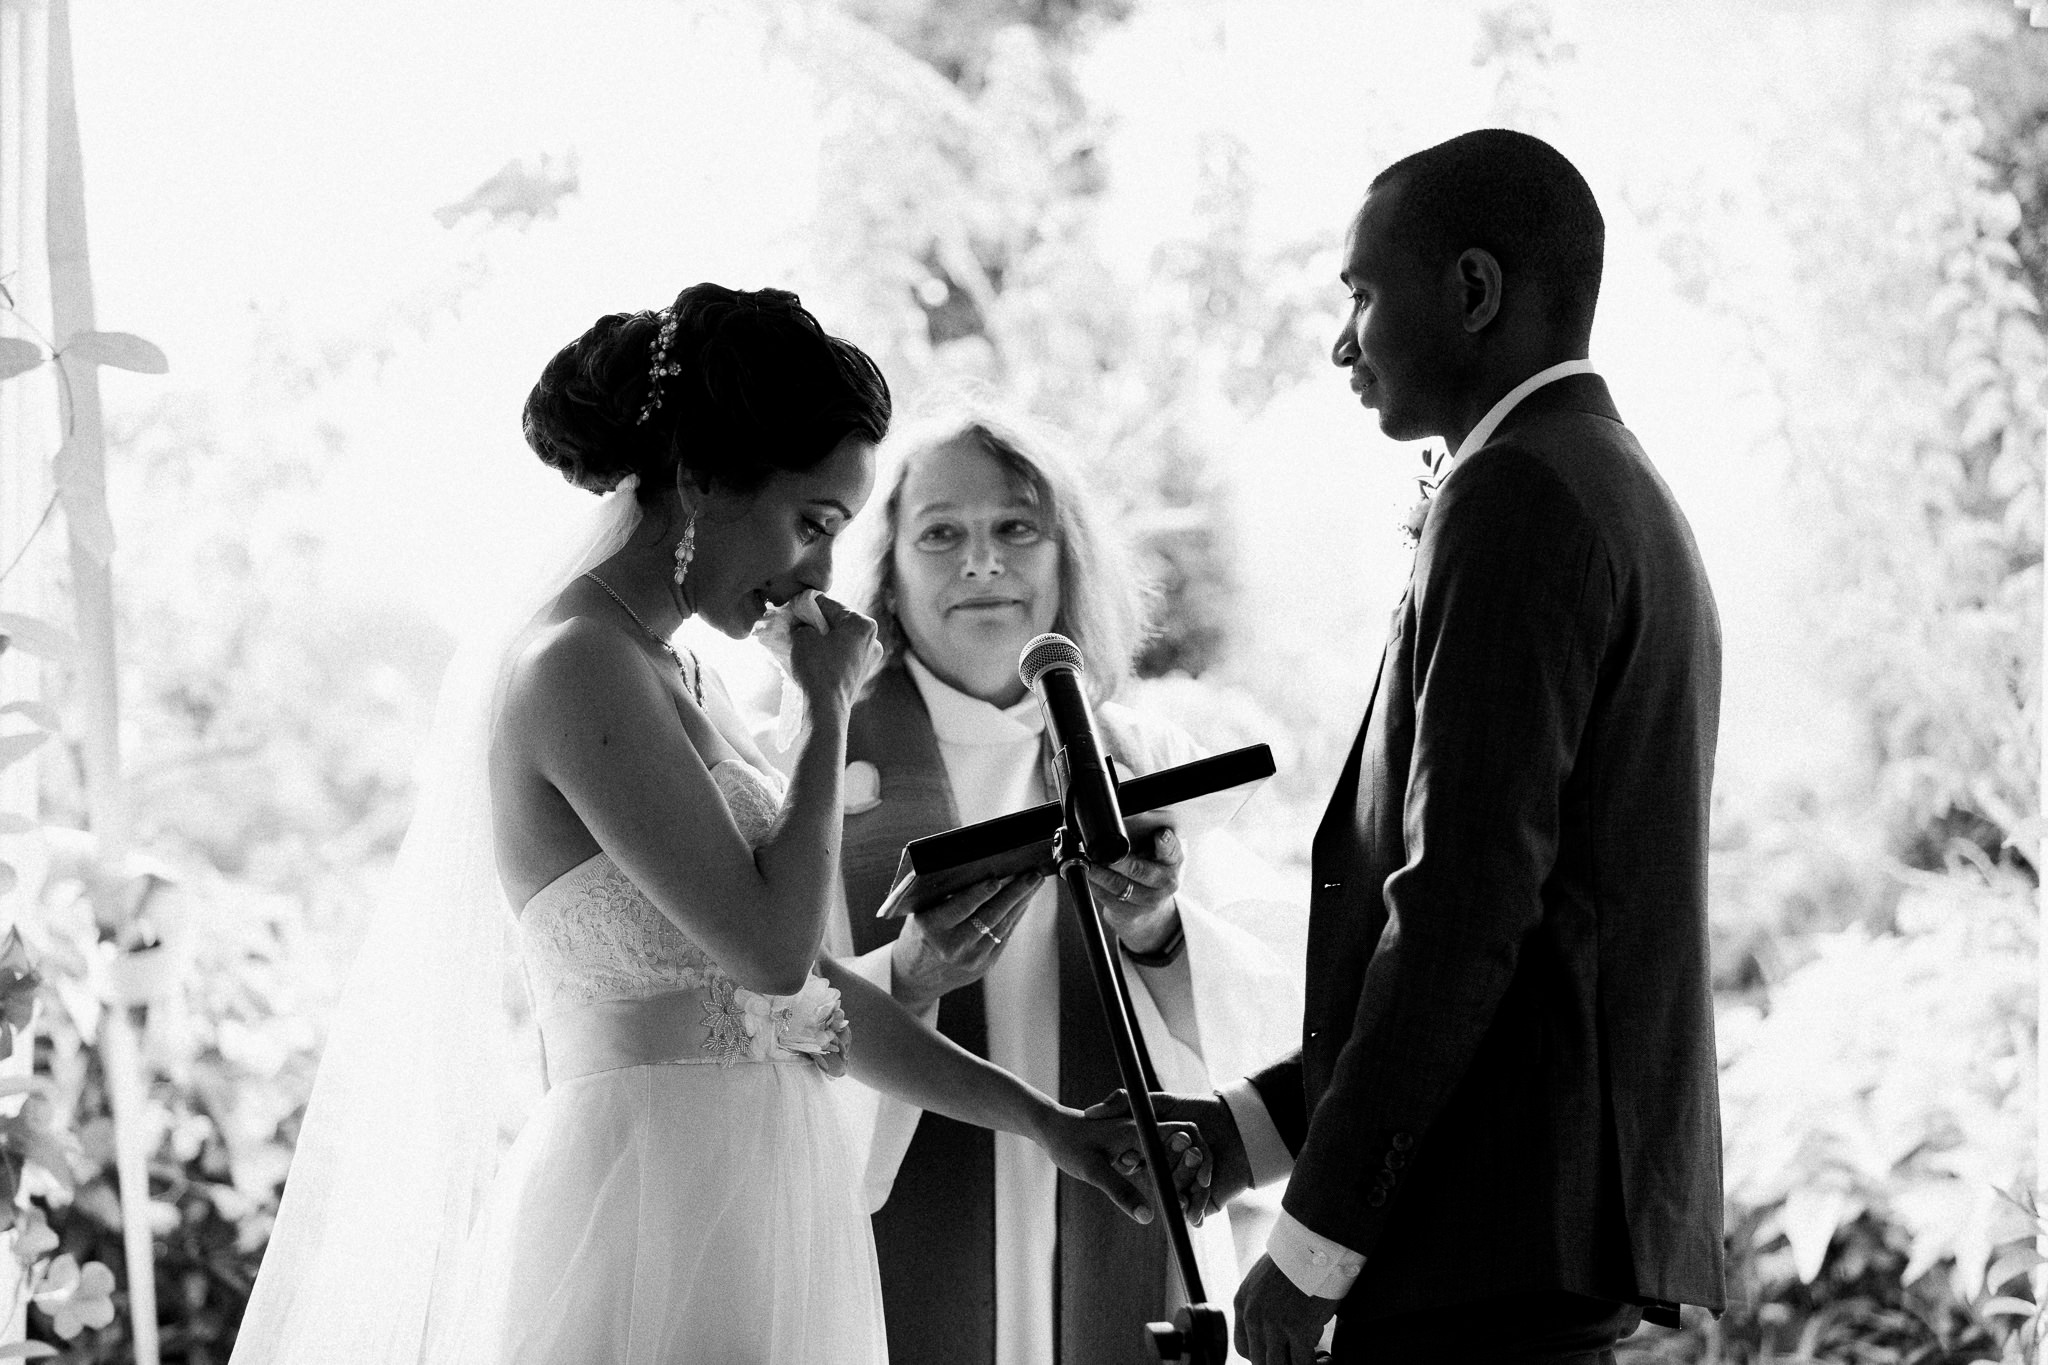 Burlington Fall wedding at Royal Botanical Gardens by Max Wong Photo (20)